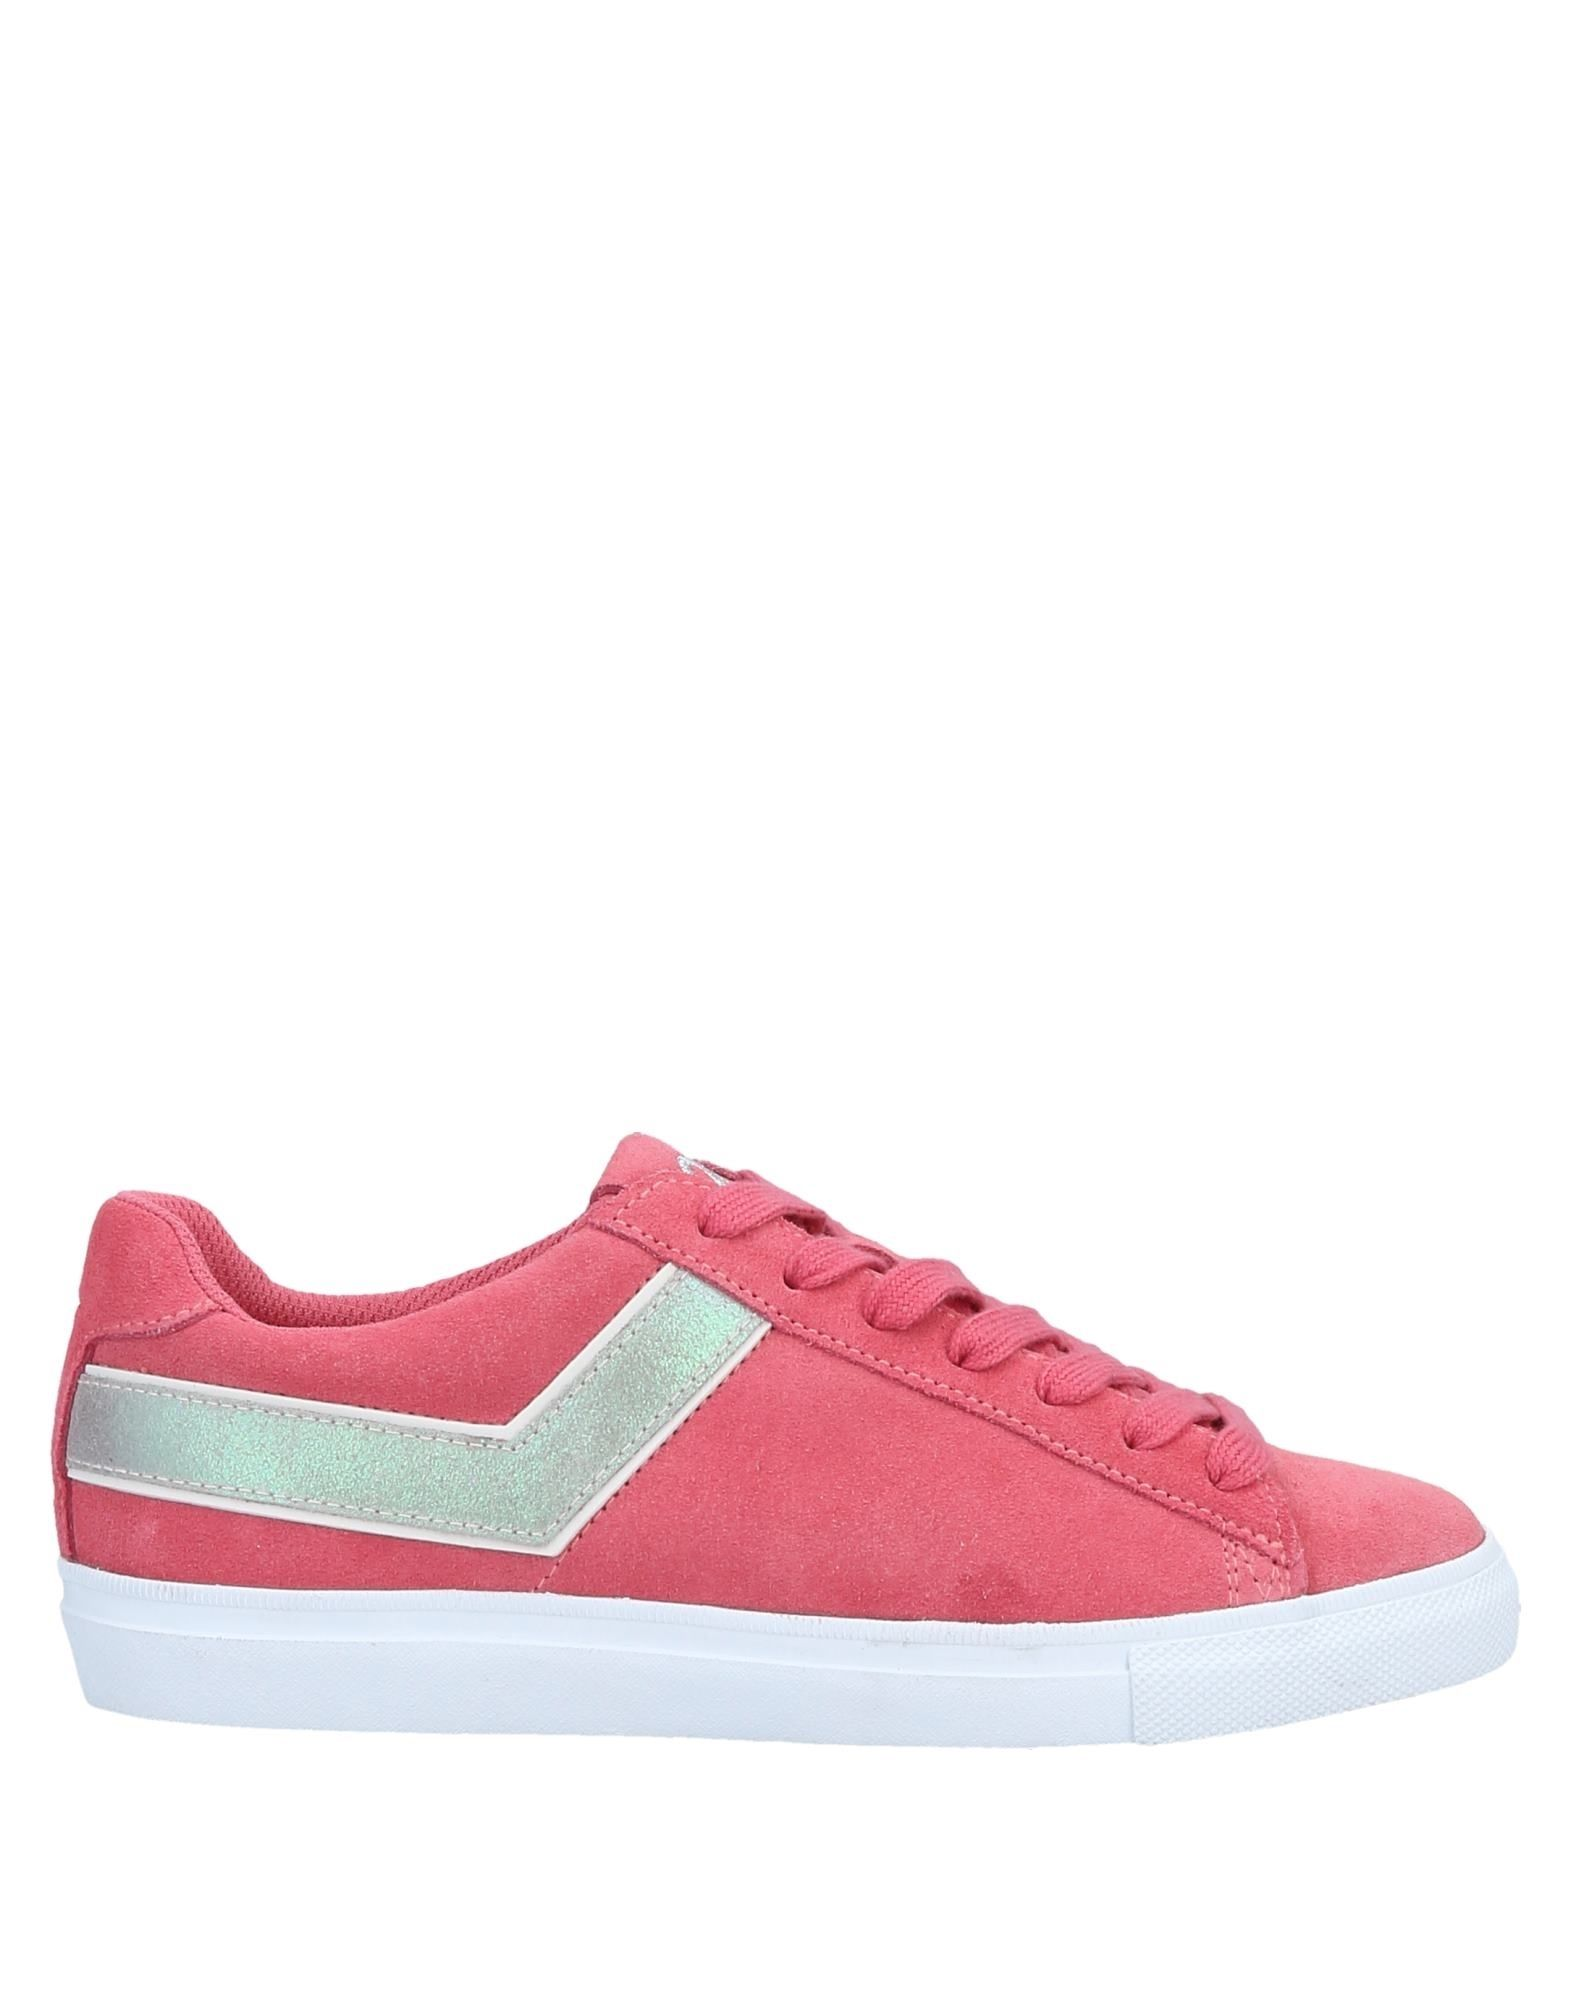 Pony on Sneakers - Women Pony Sneakers online on Pony  Canada - 11559282DH 79418a